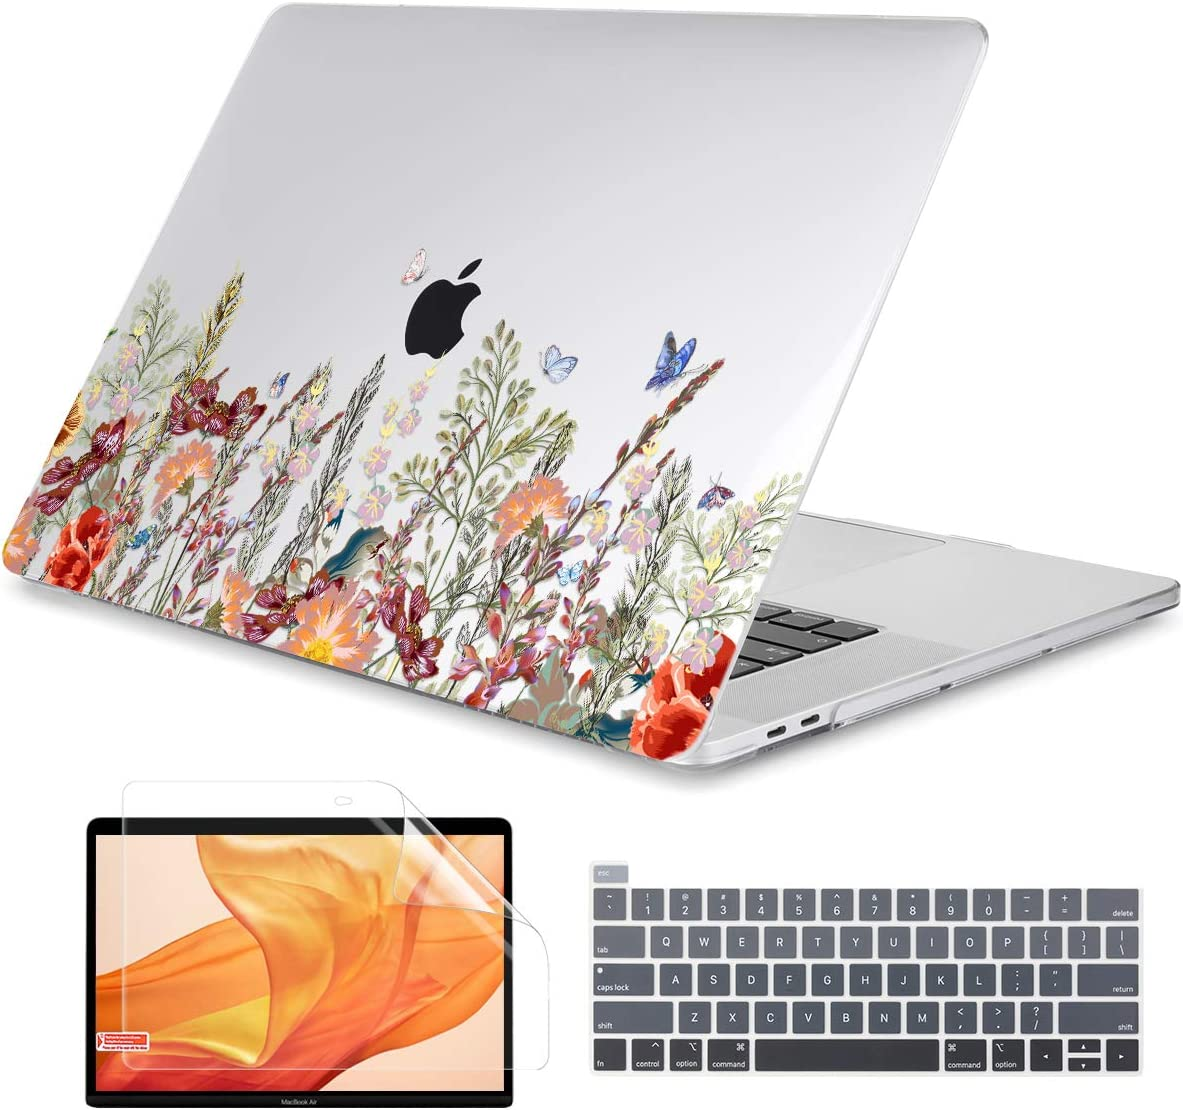 Dongke MacBook Pro 16 inch Case Model A2141 (2019 Released), Plastic Hard Shell Case Cover Only Compatible with MacBook Pro 16 inch with Retina Display & Touch Bar Fits Touch ID, Floral Illustration